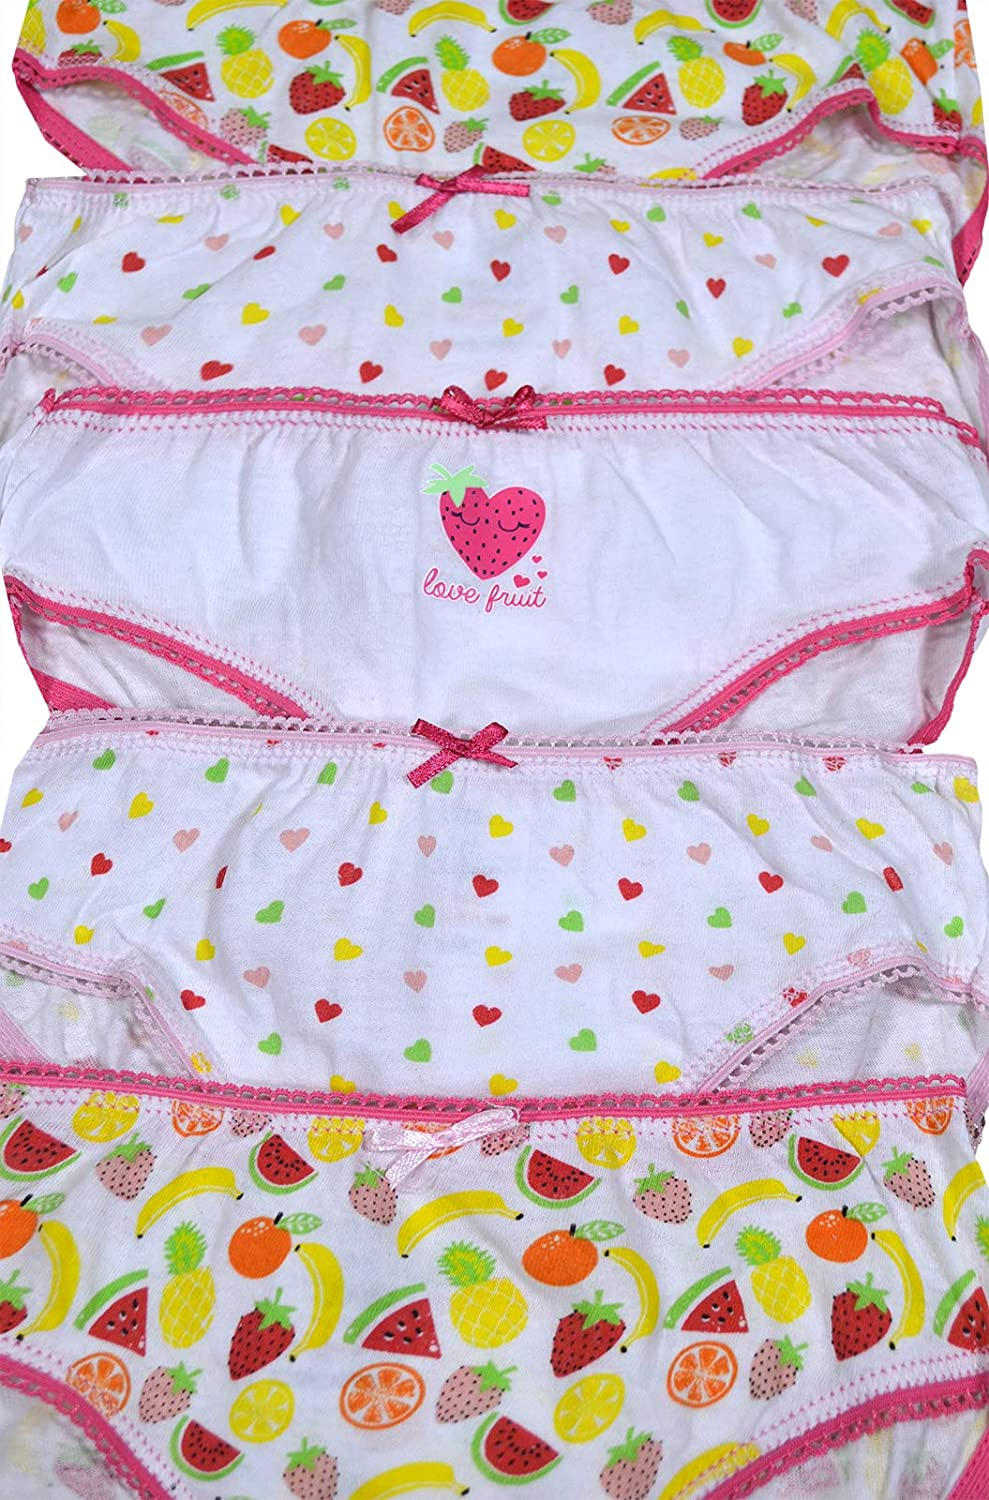 FASHION REVIEW New Girls Childrens 3 Pack Unicorn Polka-Dot Design Cotton Rich Briefs Knickers